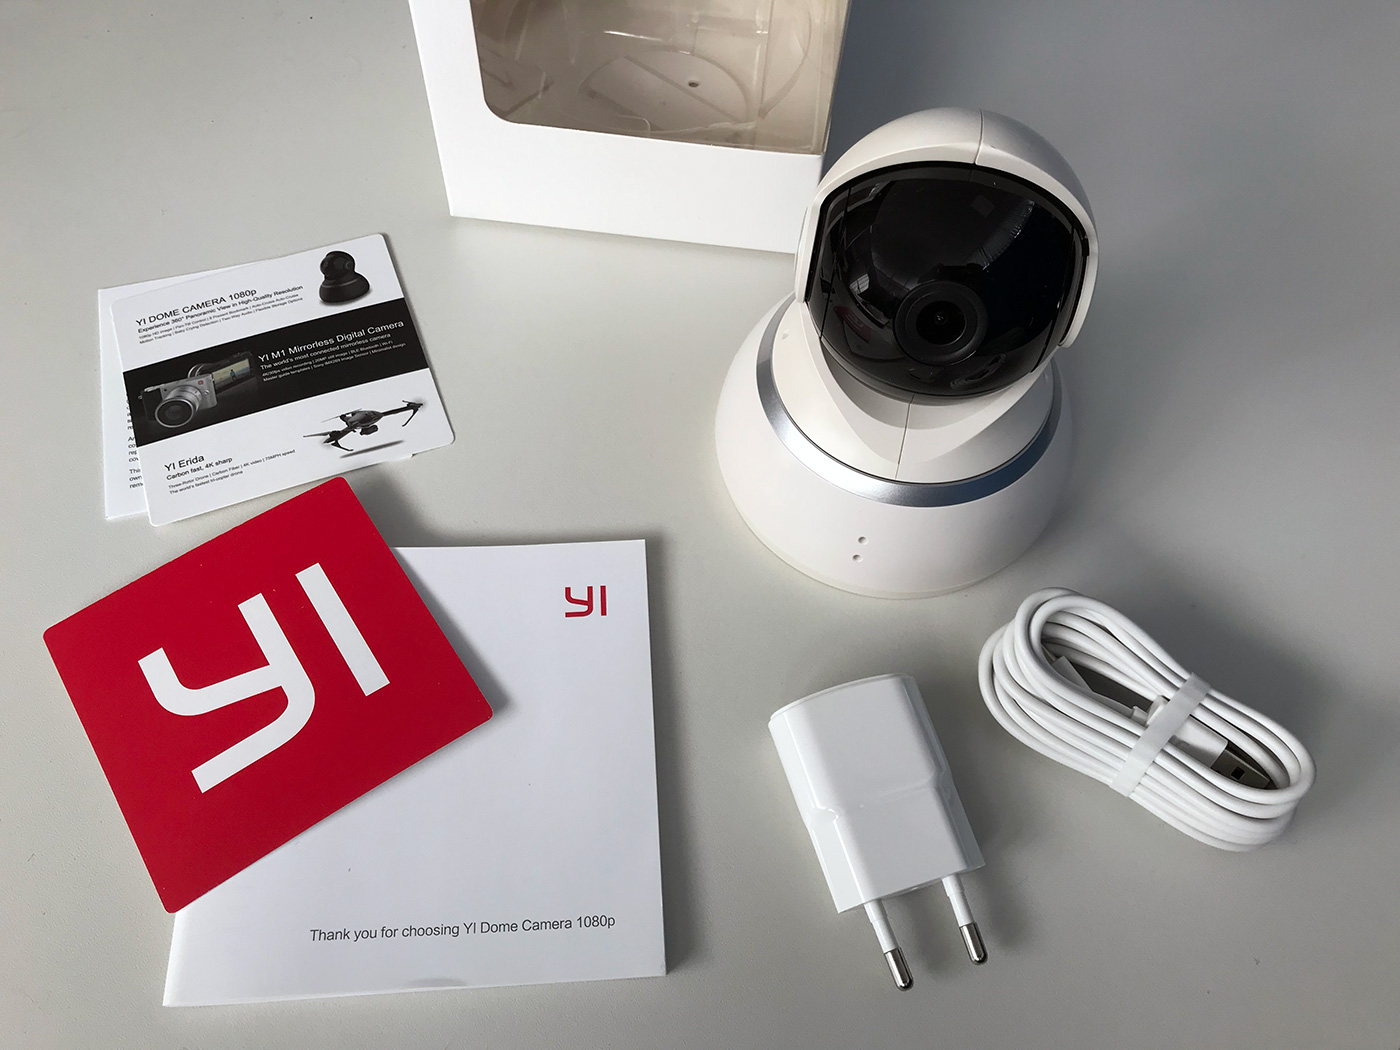 YI Dome Camera 1080p | inDomus it